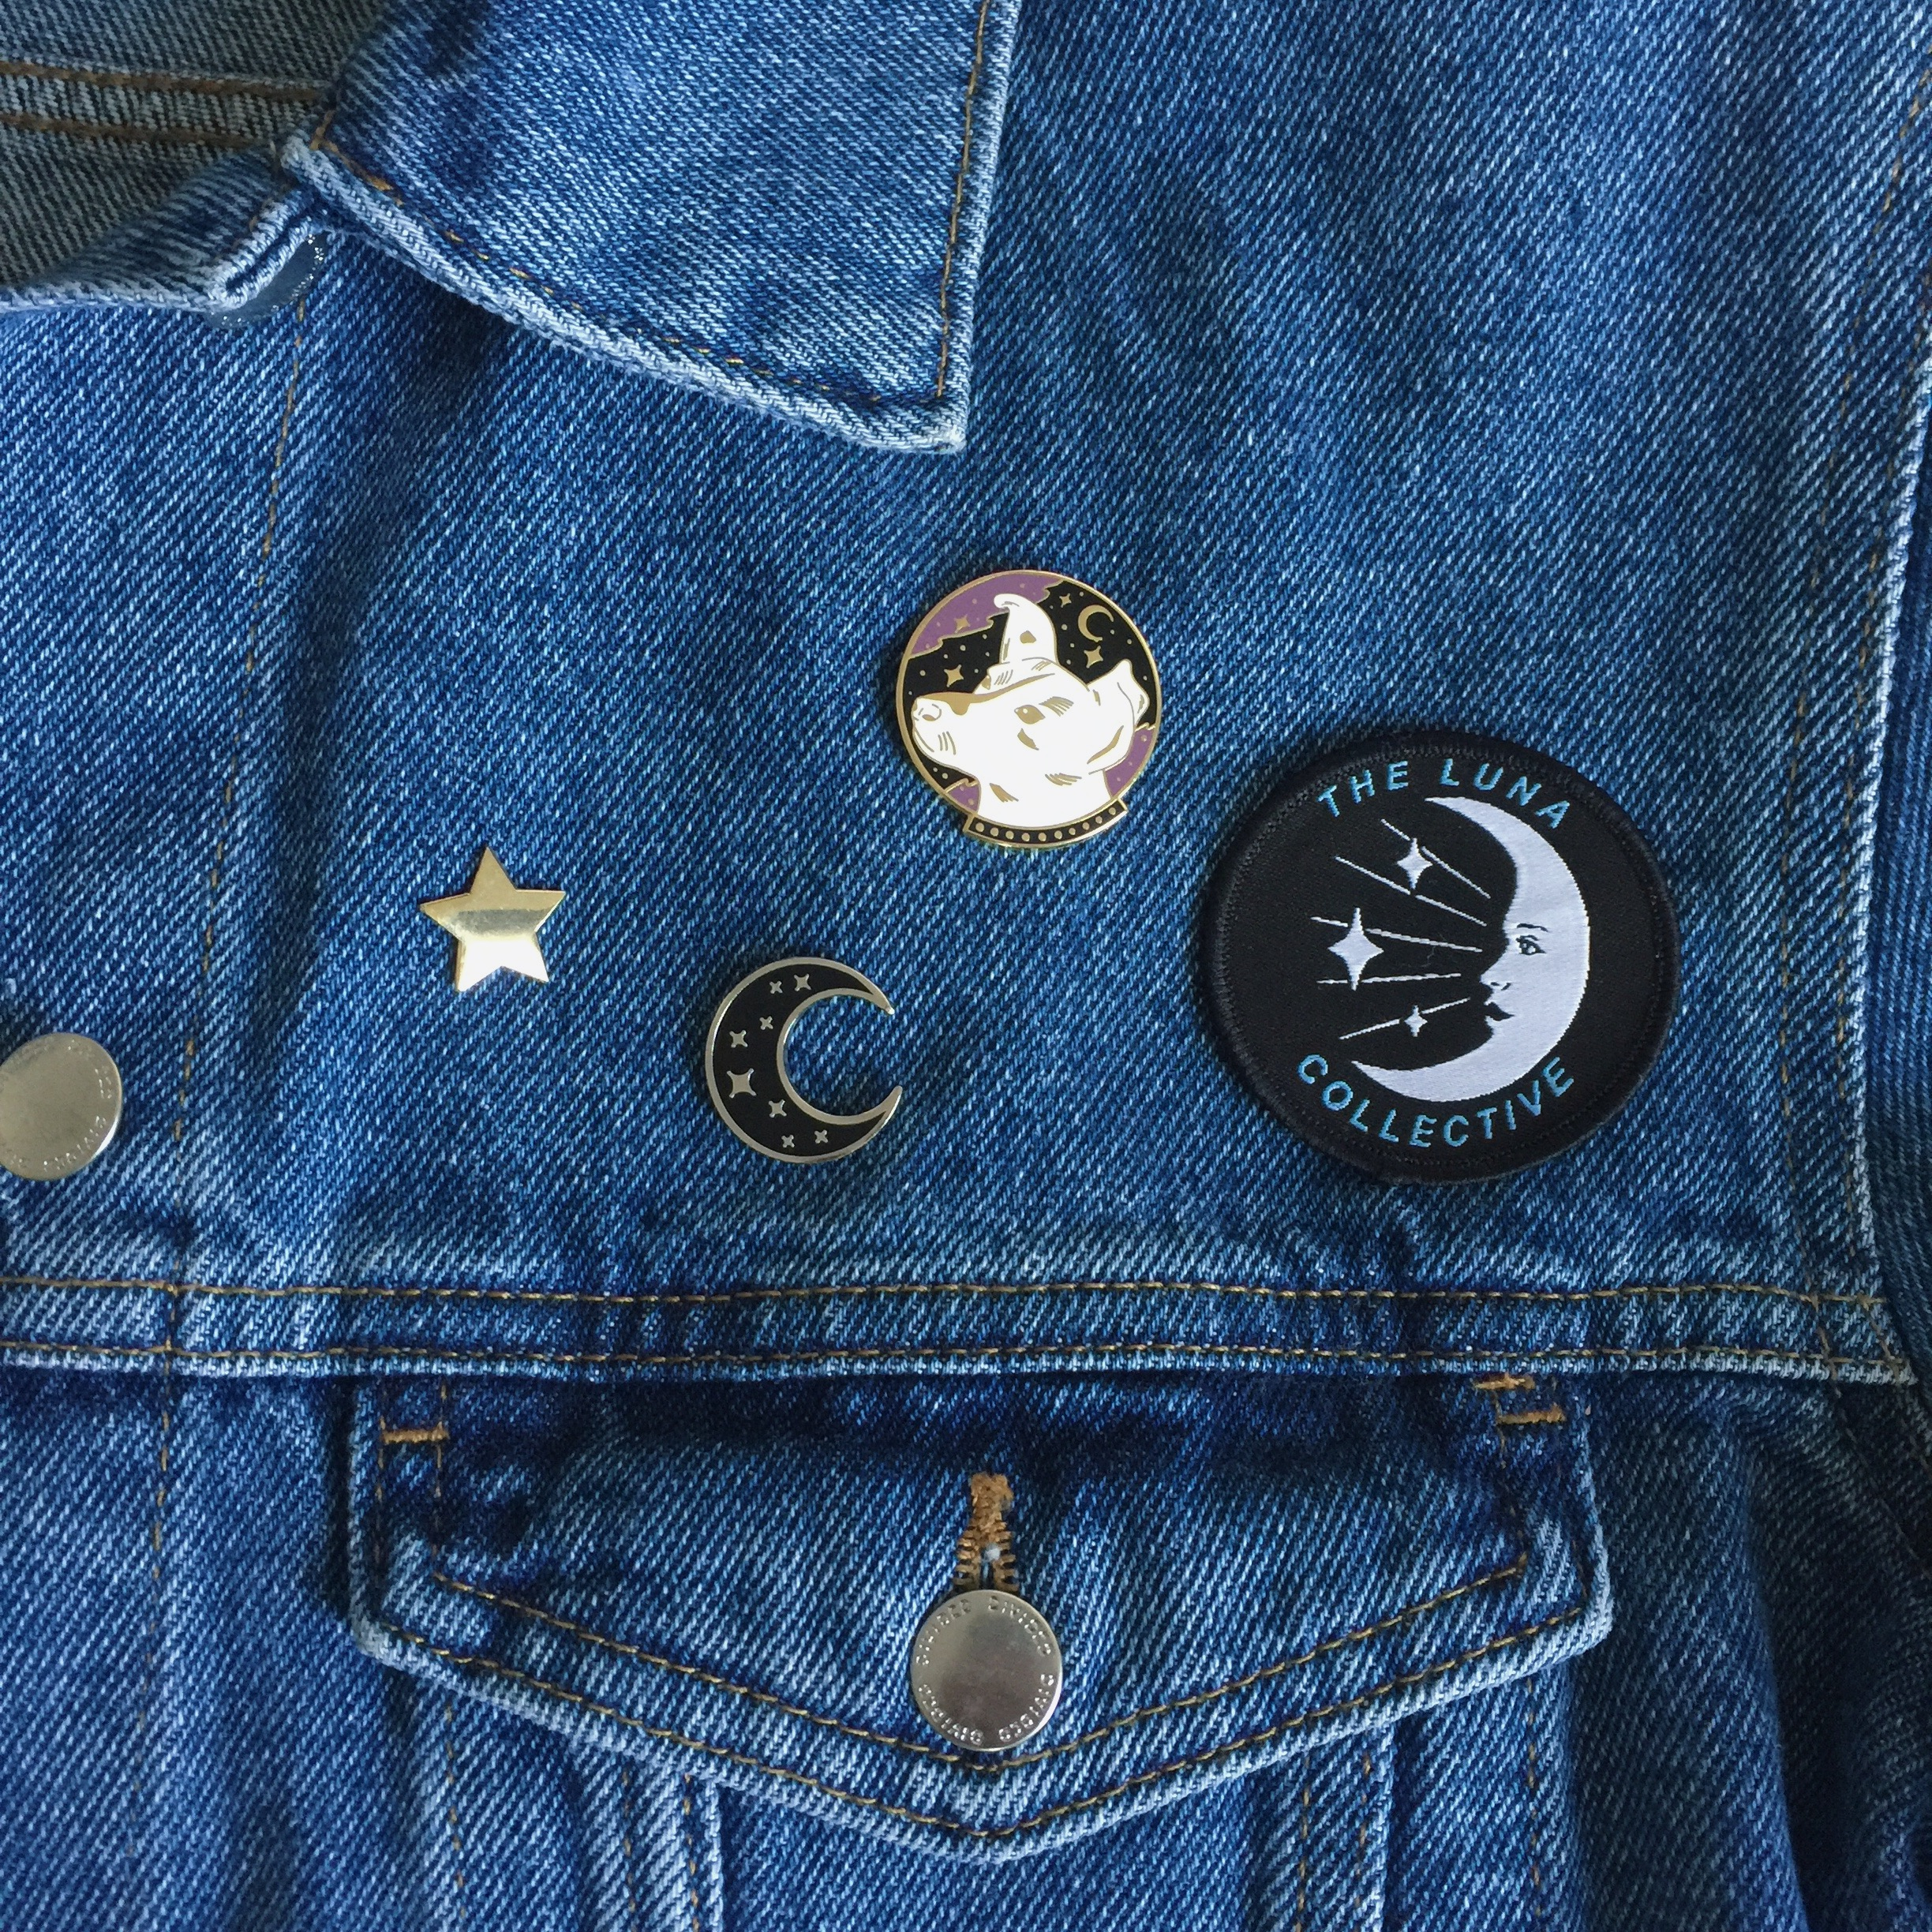 The Luna Collective logo patches